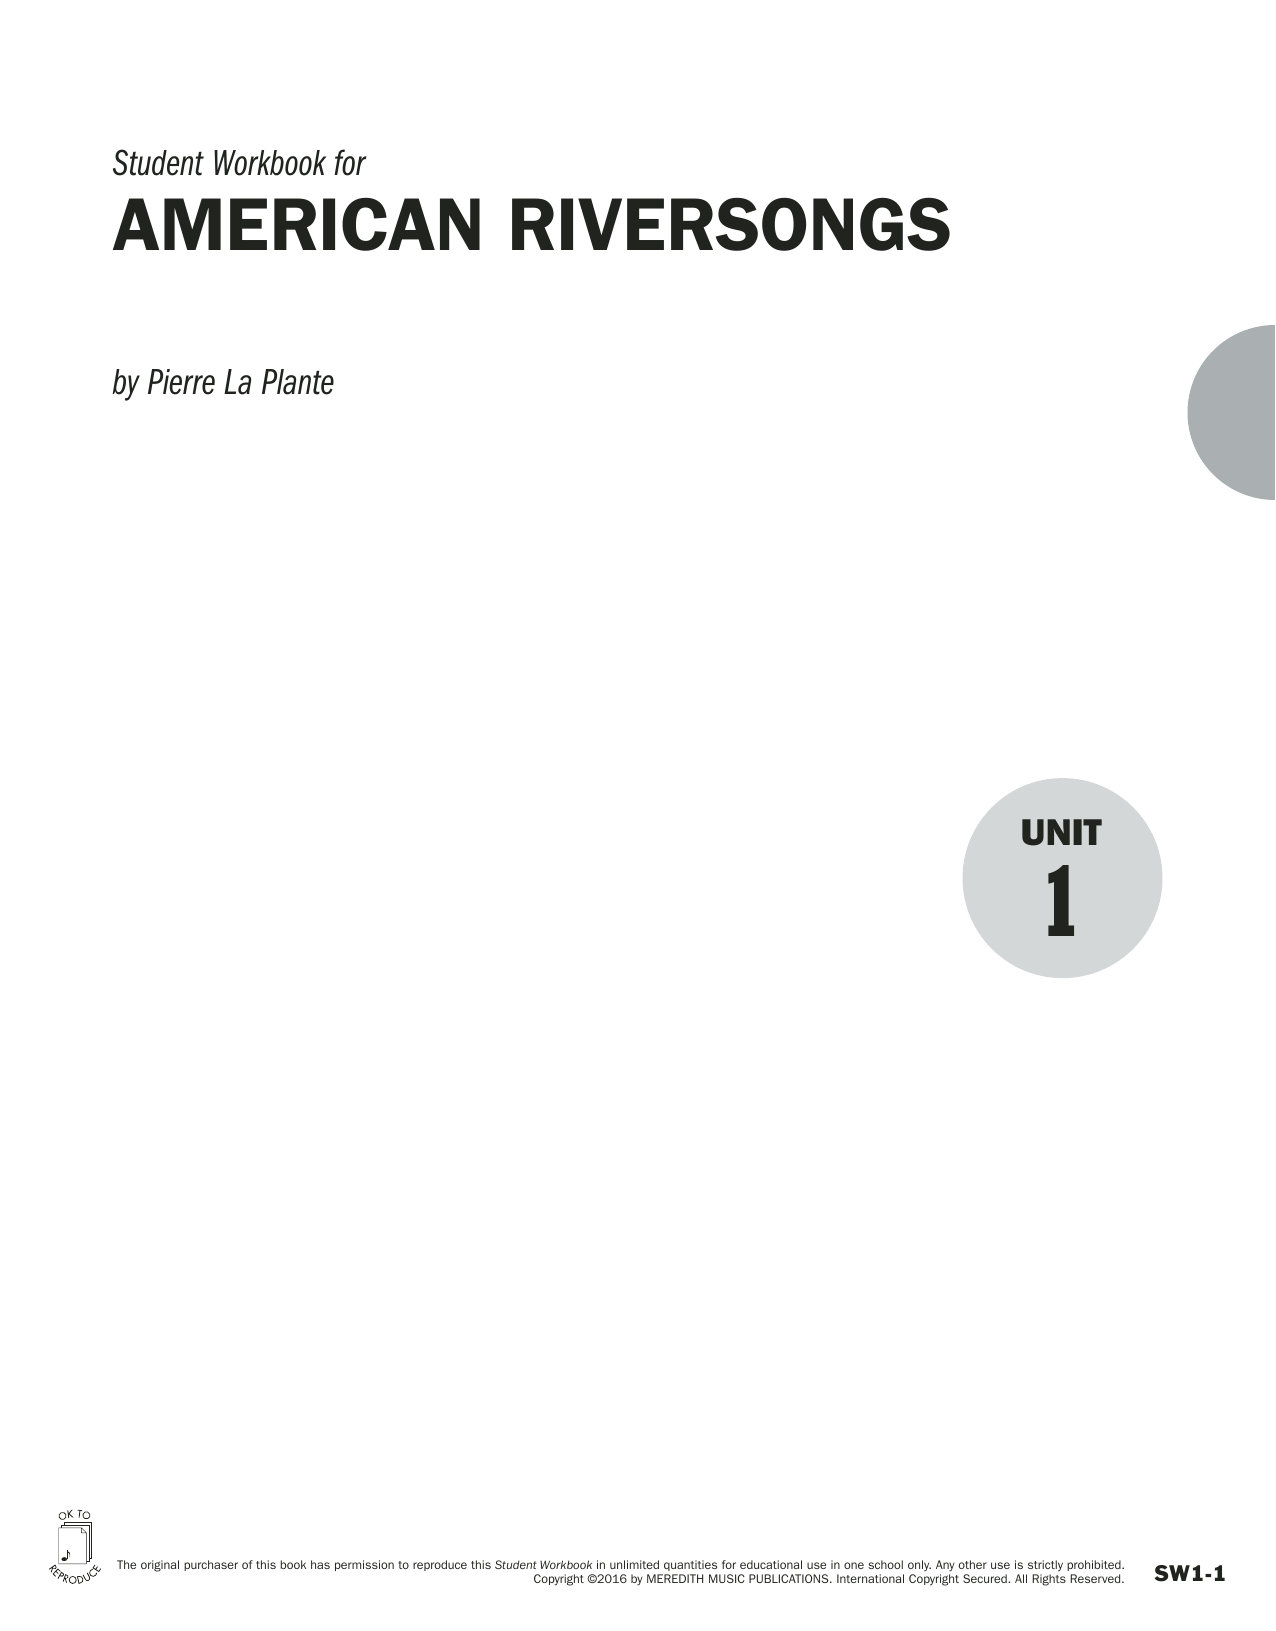 Guides to Band Masterworks, Vol. 6 - Student Workbook - American Riversongs Sheet Music